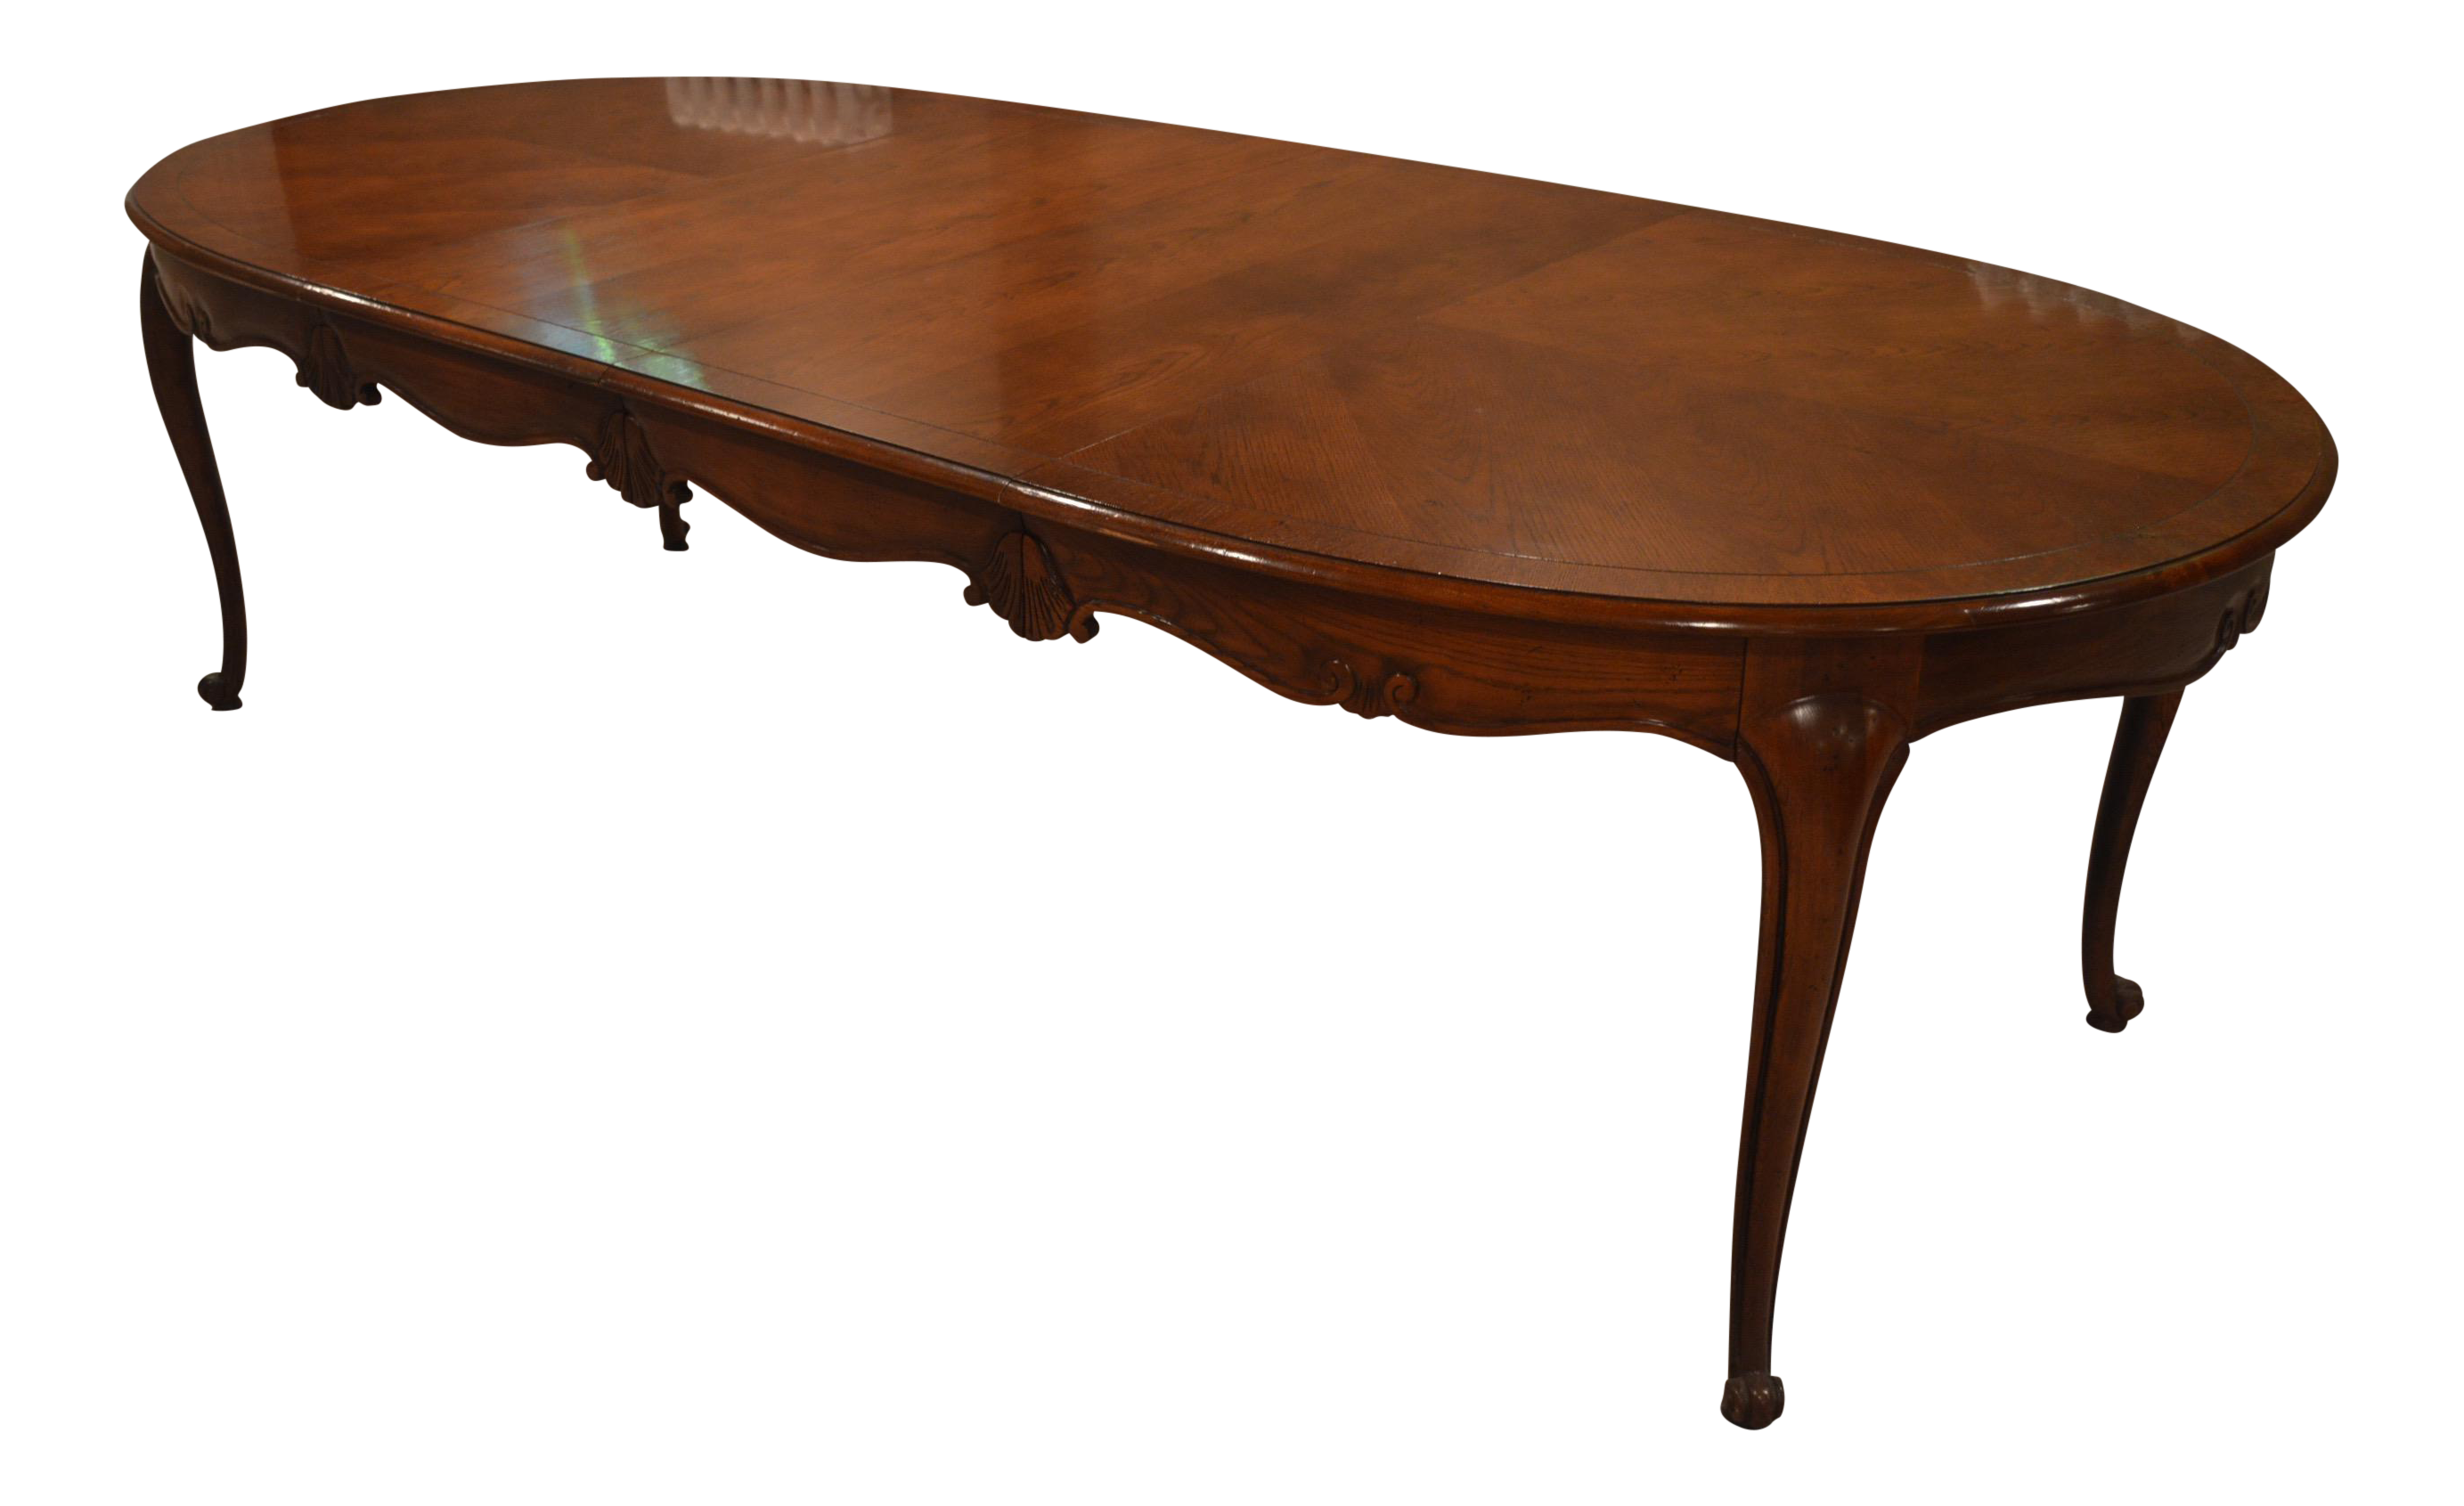 Century furniture classic style dining table chairish for Table 52 private dining